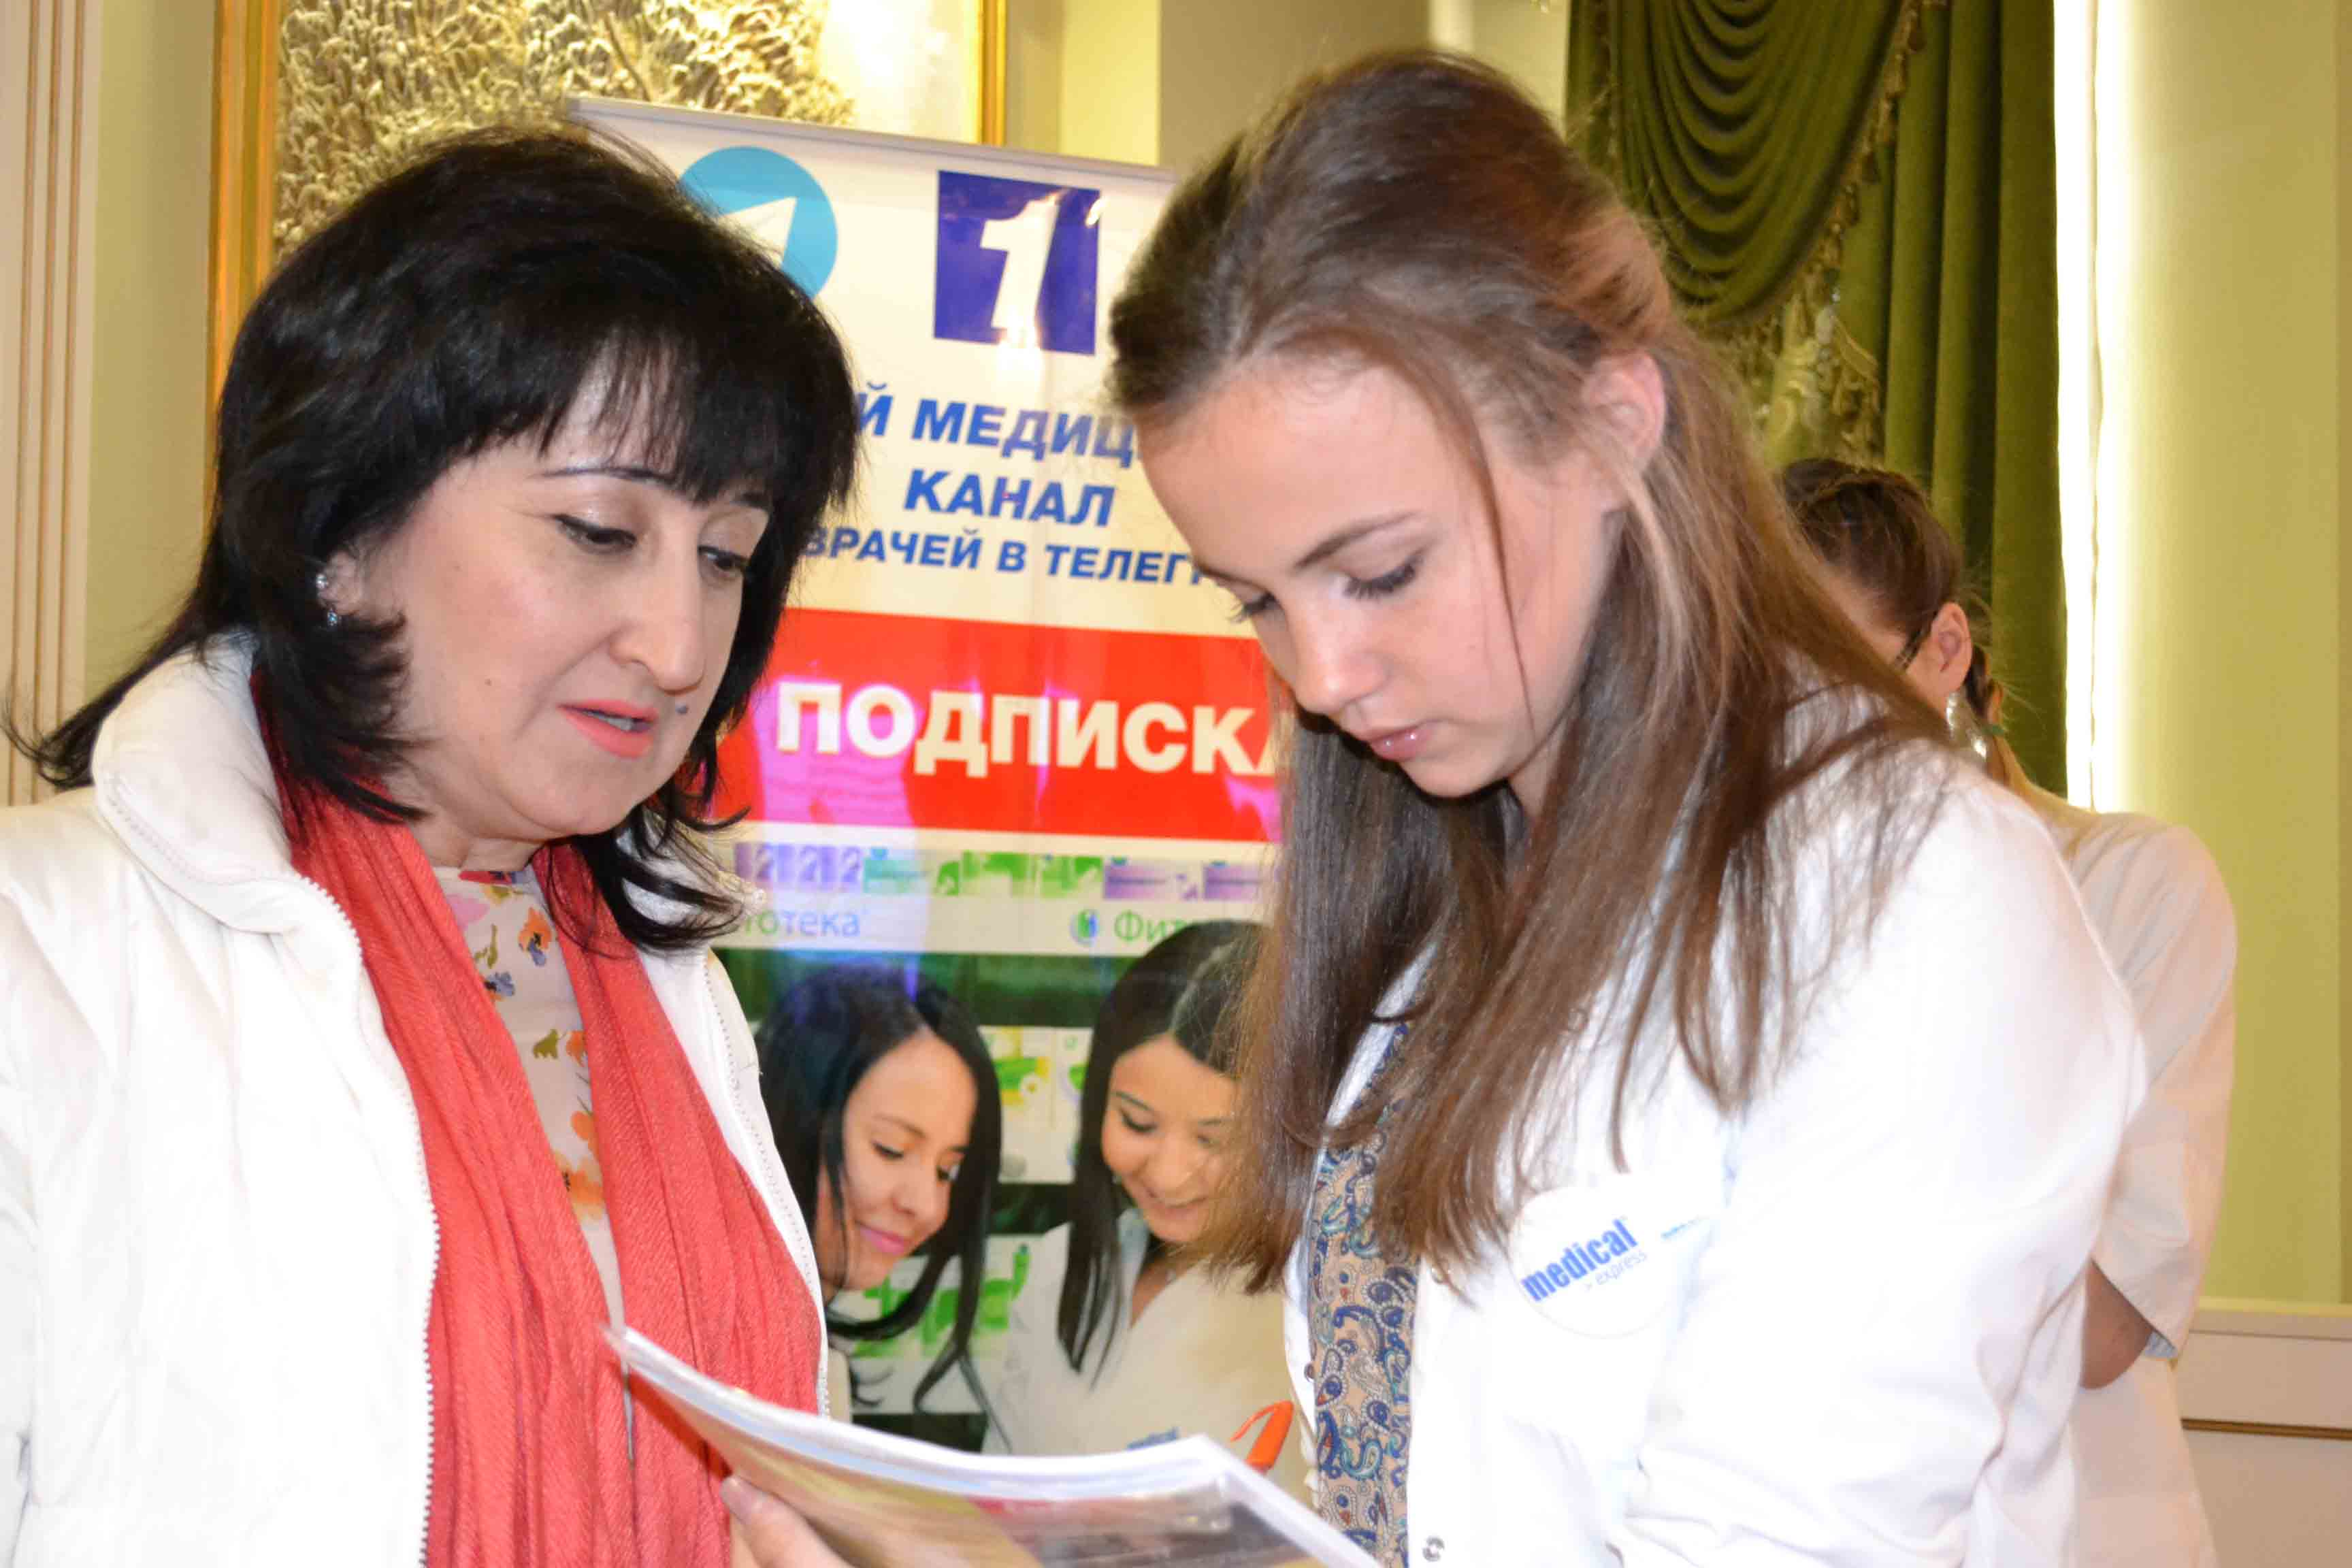 http://medicalexpress.ru/uploads/video-doklady/Egorov/DSC_0071.JPG